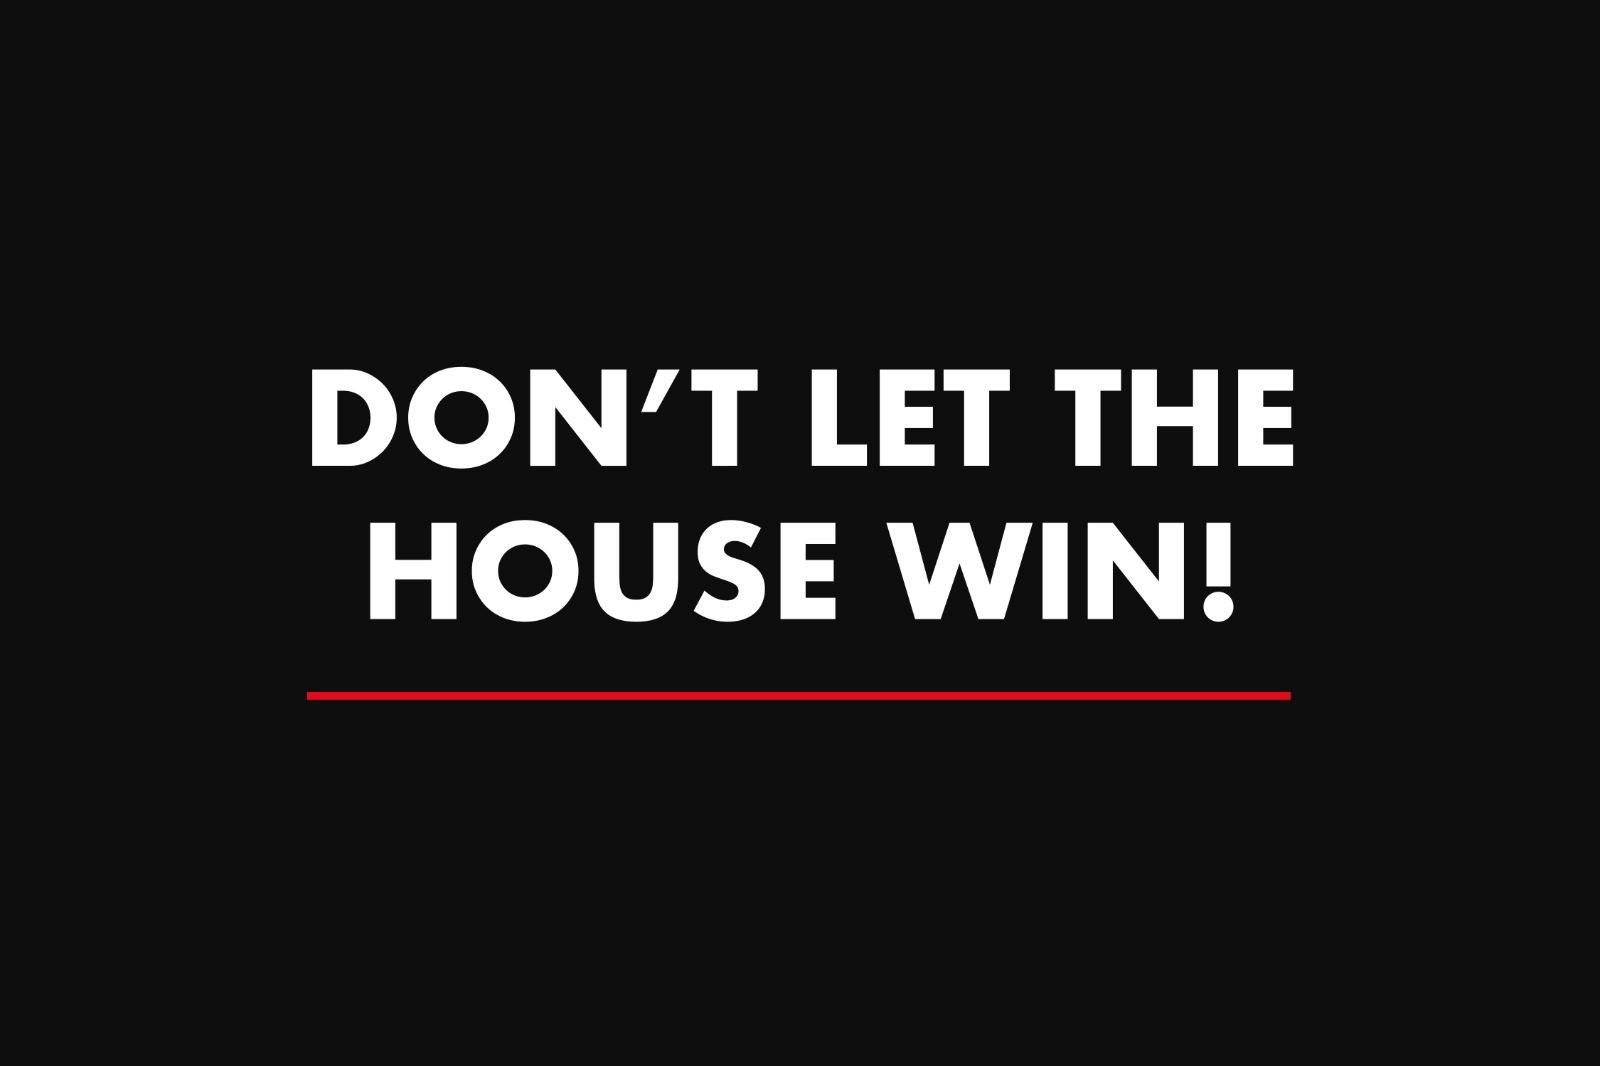 Commissions, Premiums, Smoke & Mirrors - Don't Let the House Win